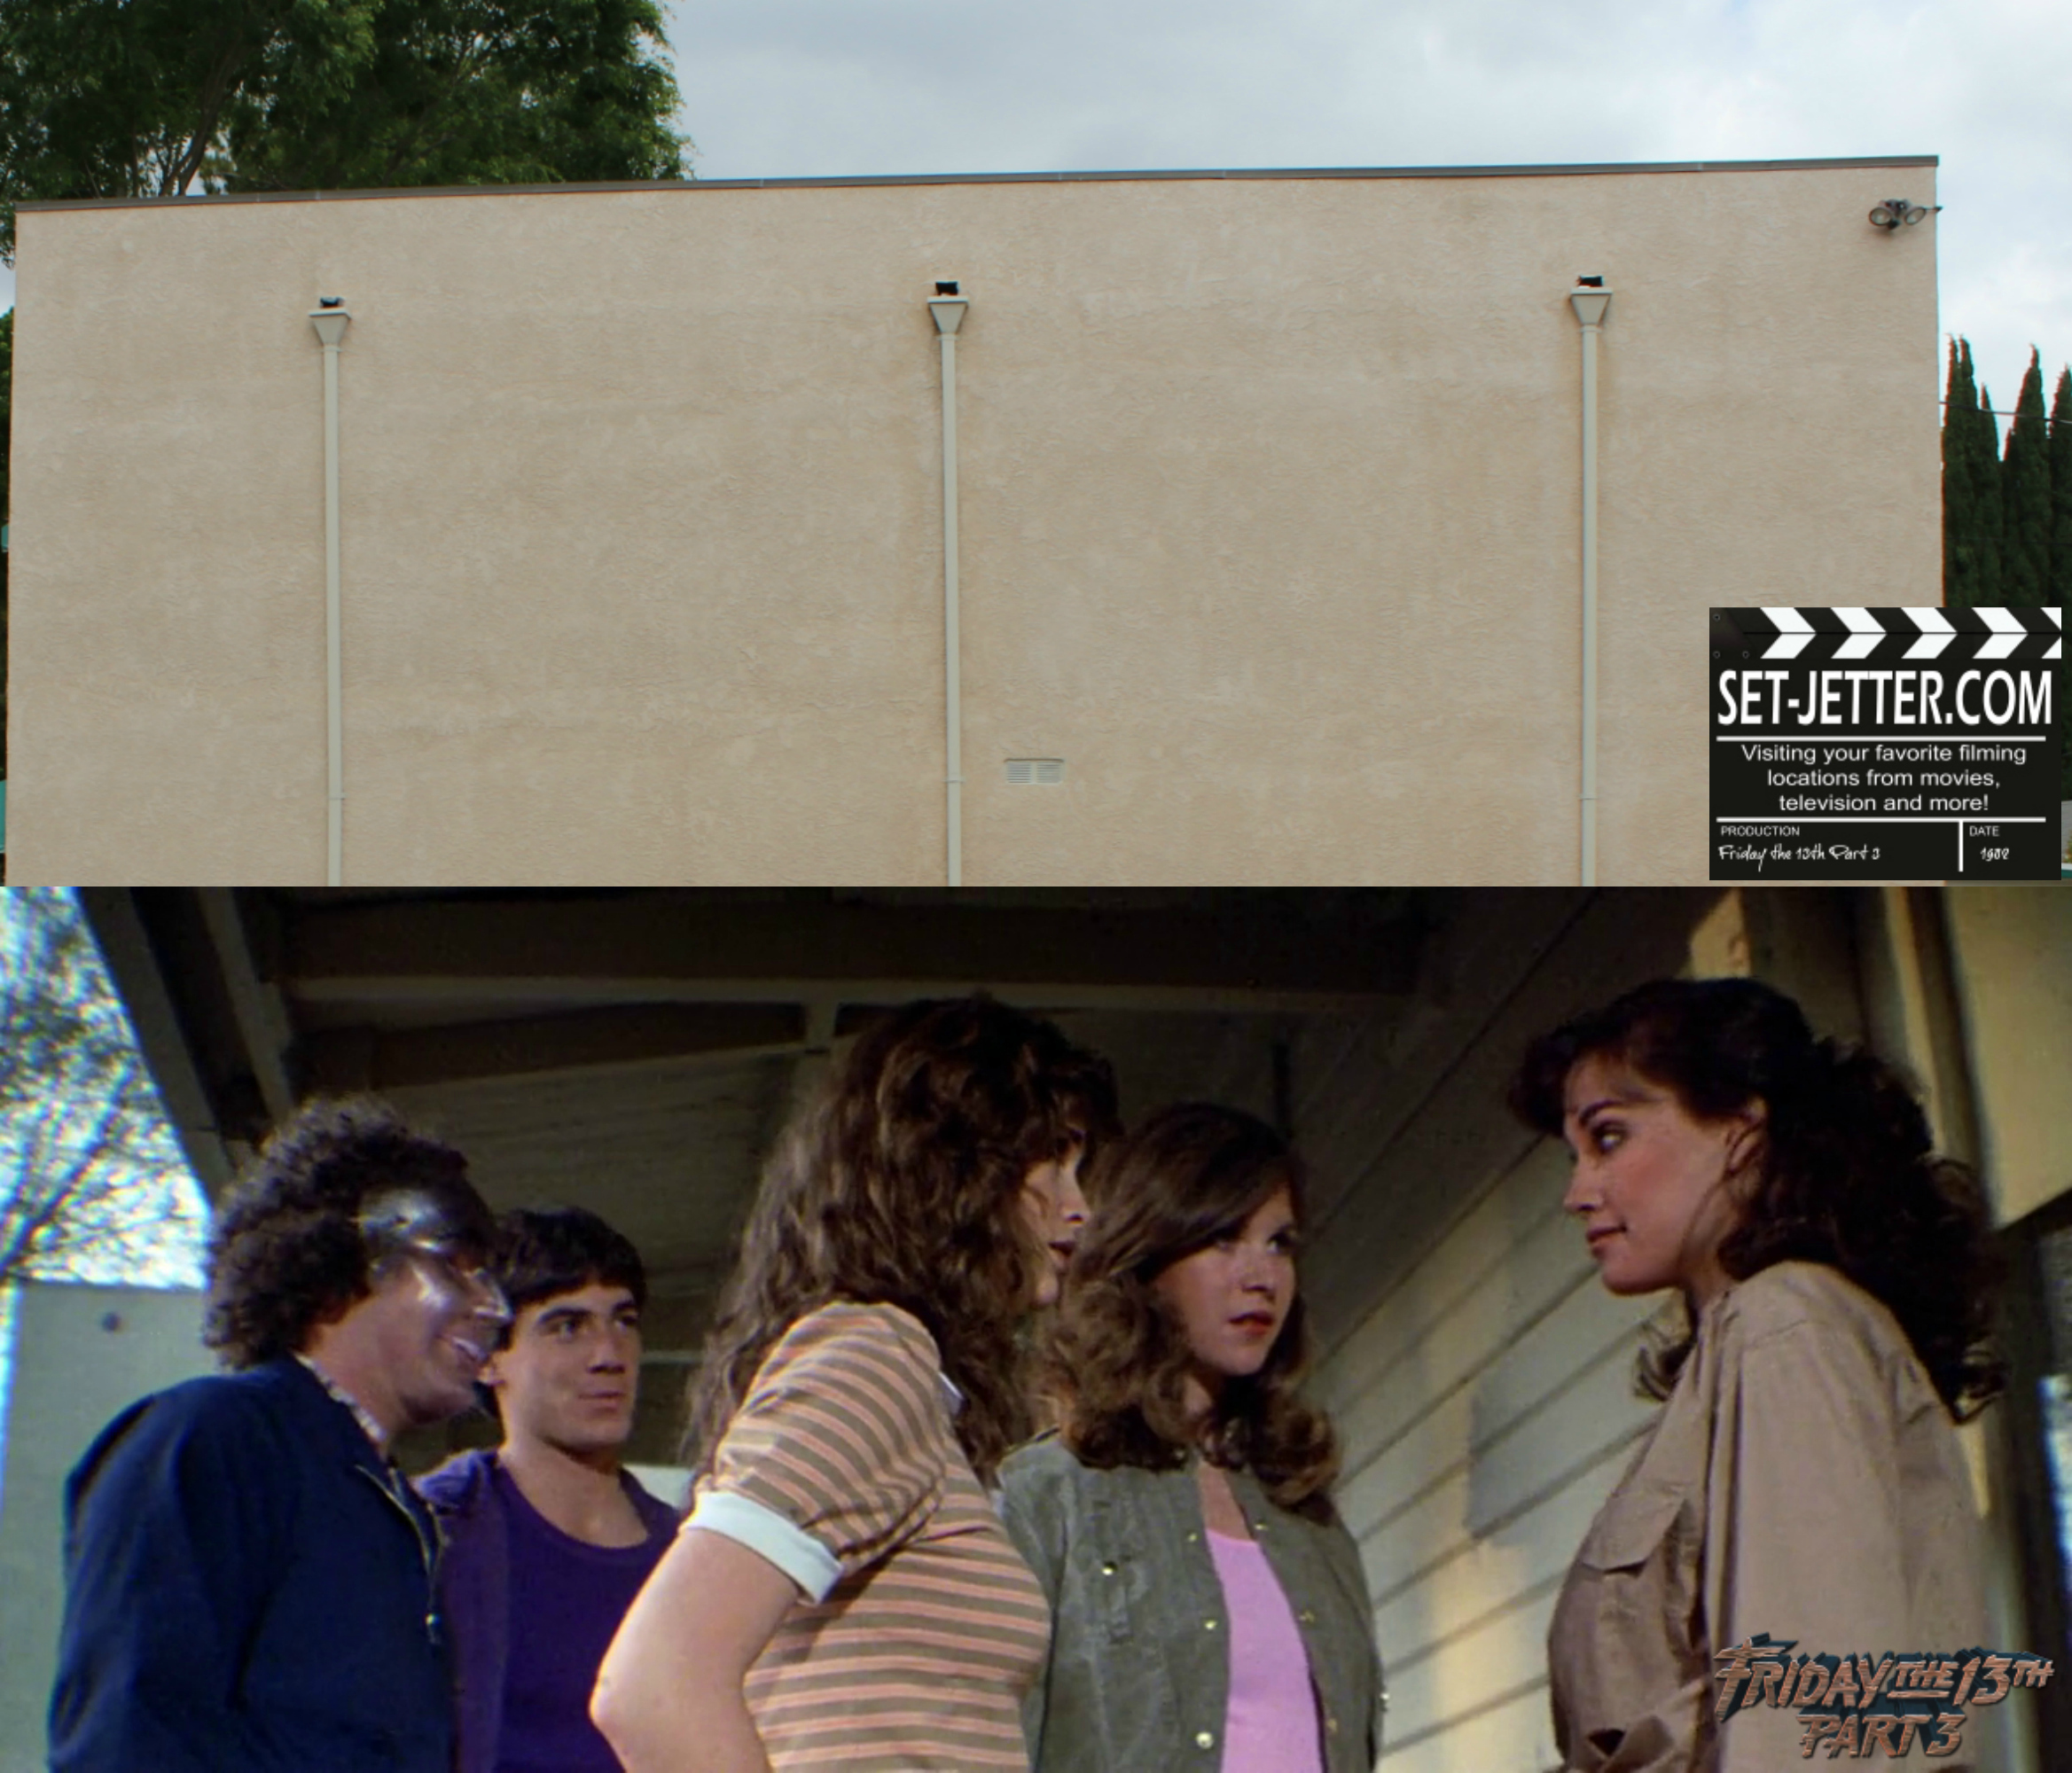 Friday the 13th Part 3 comparison 32.jpg